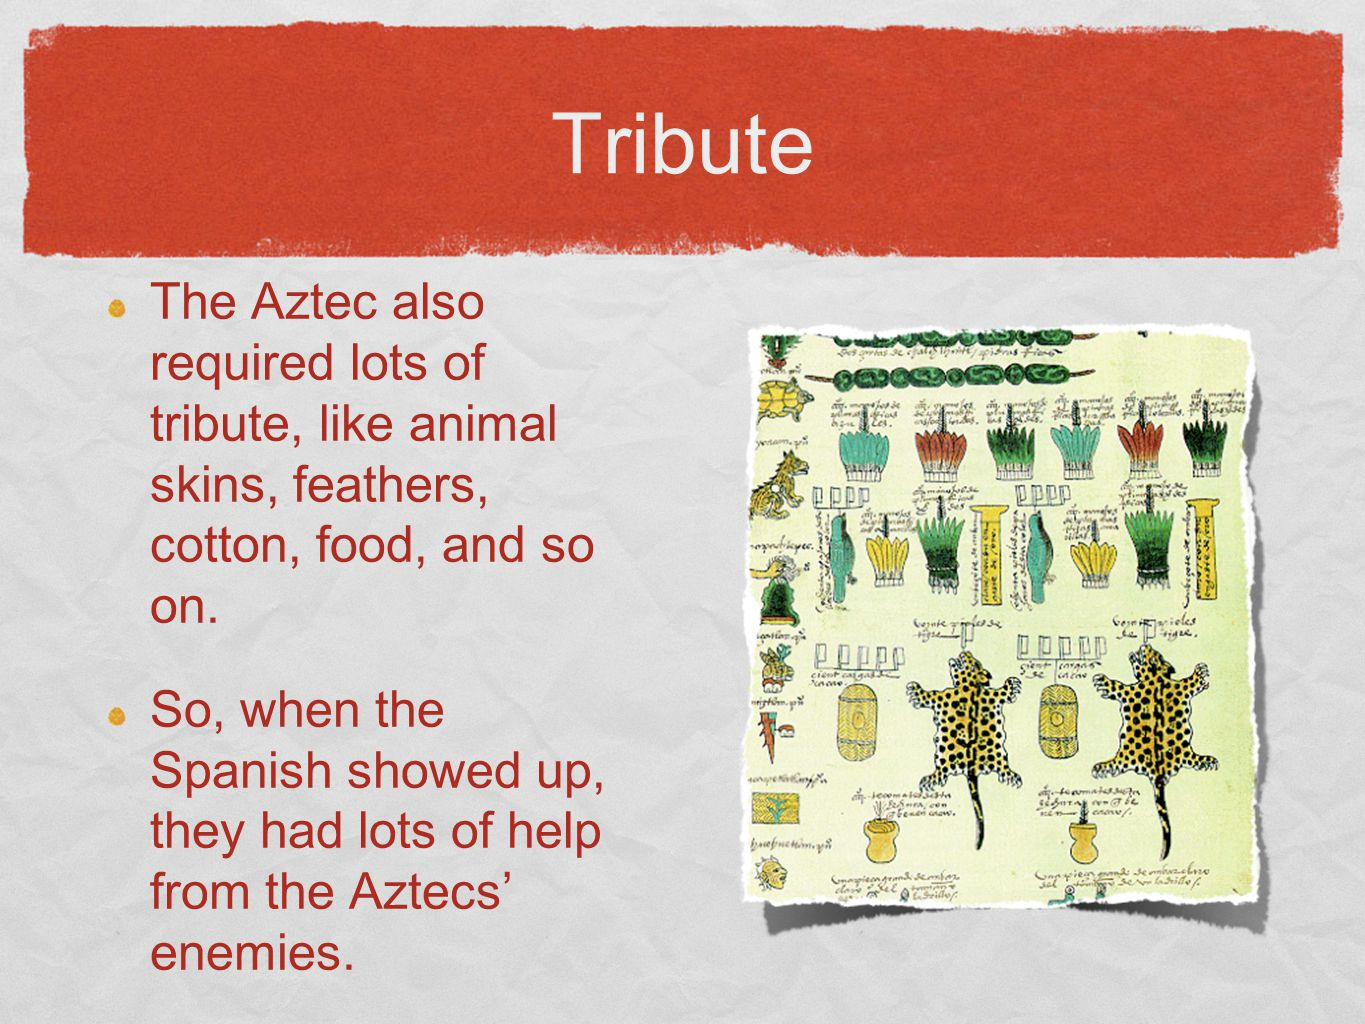 Tribute The Aztec also required lots of tribute, like animal skins, feathers, cotton, food, and so on.